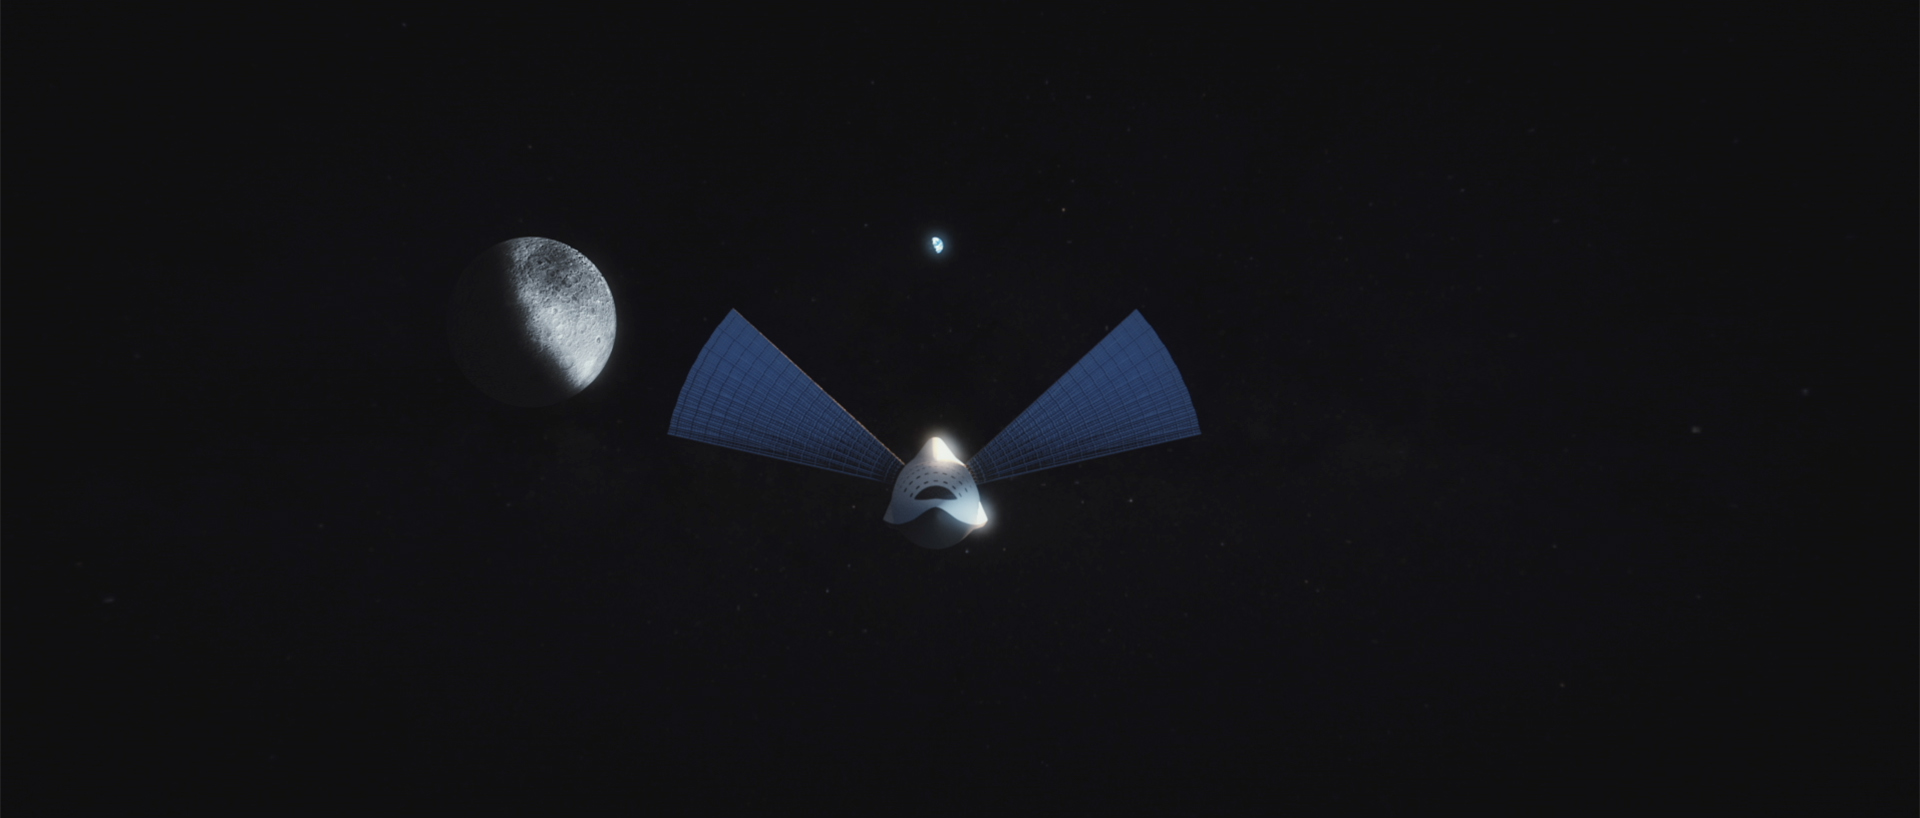 SpaceX's Interplanetary Transport System for Mars Colonization in Images